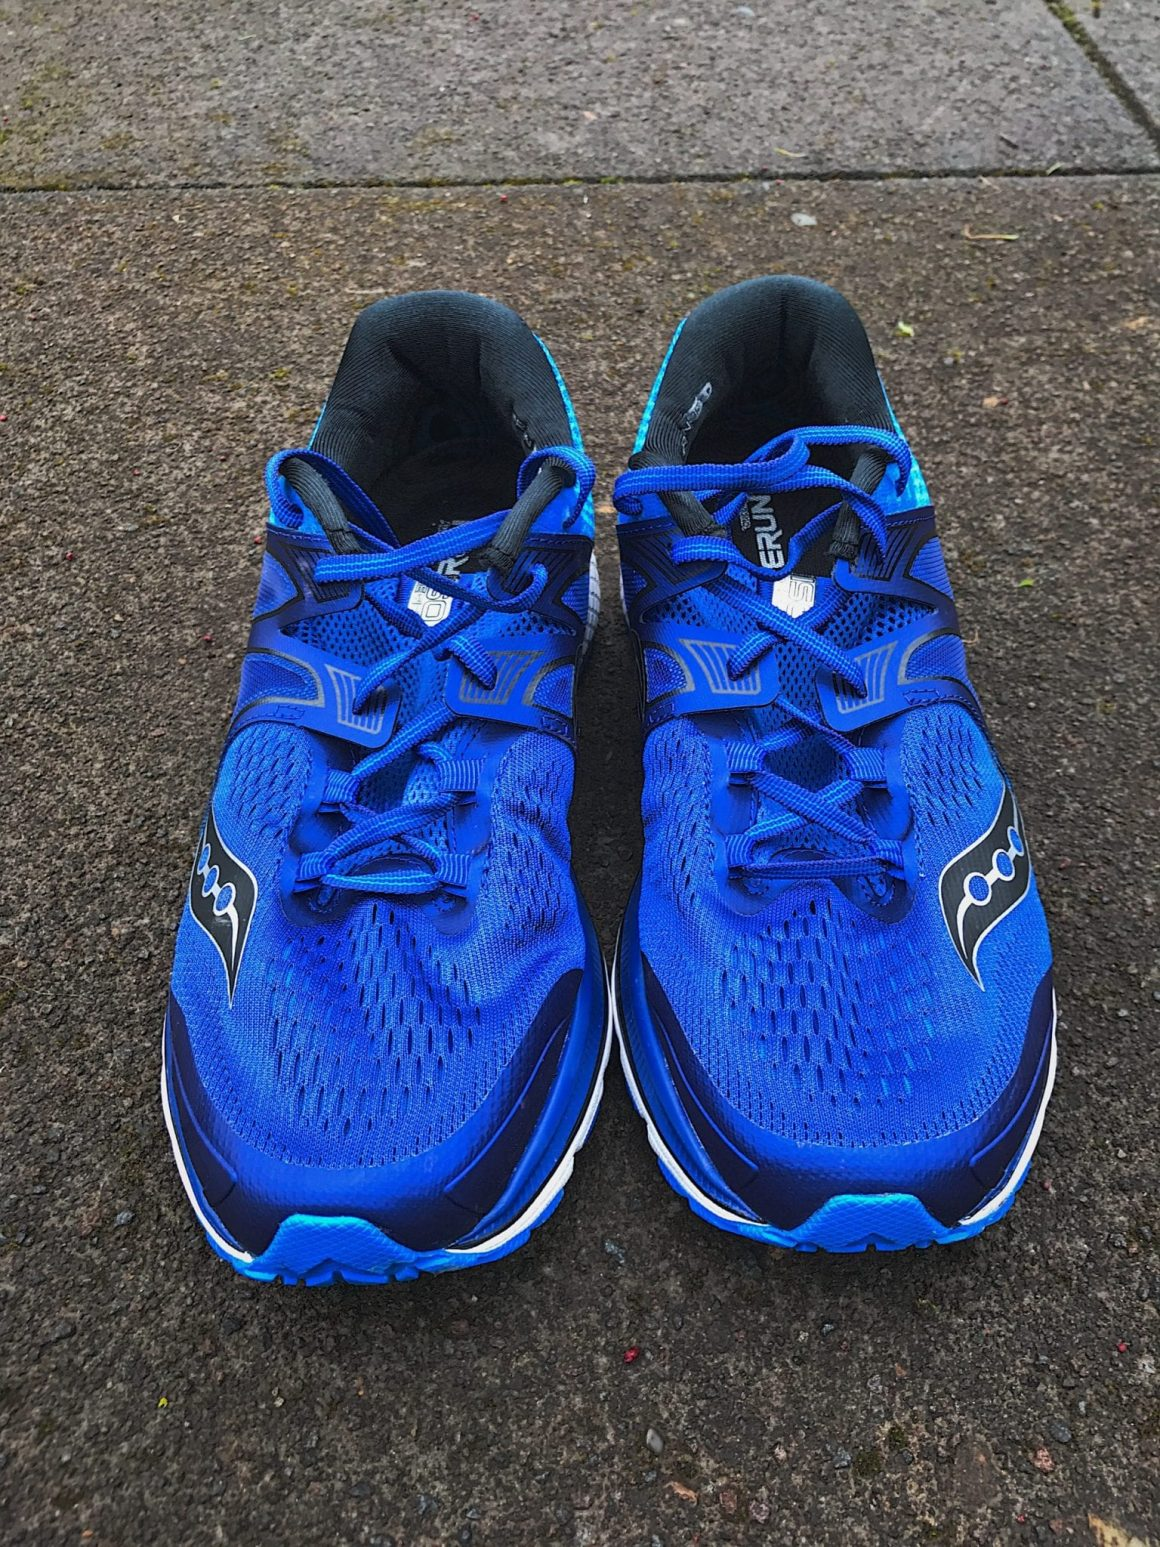 Saucony Triumph ISO 3 from the front